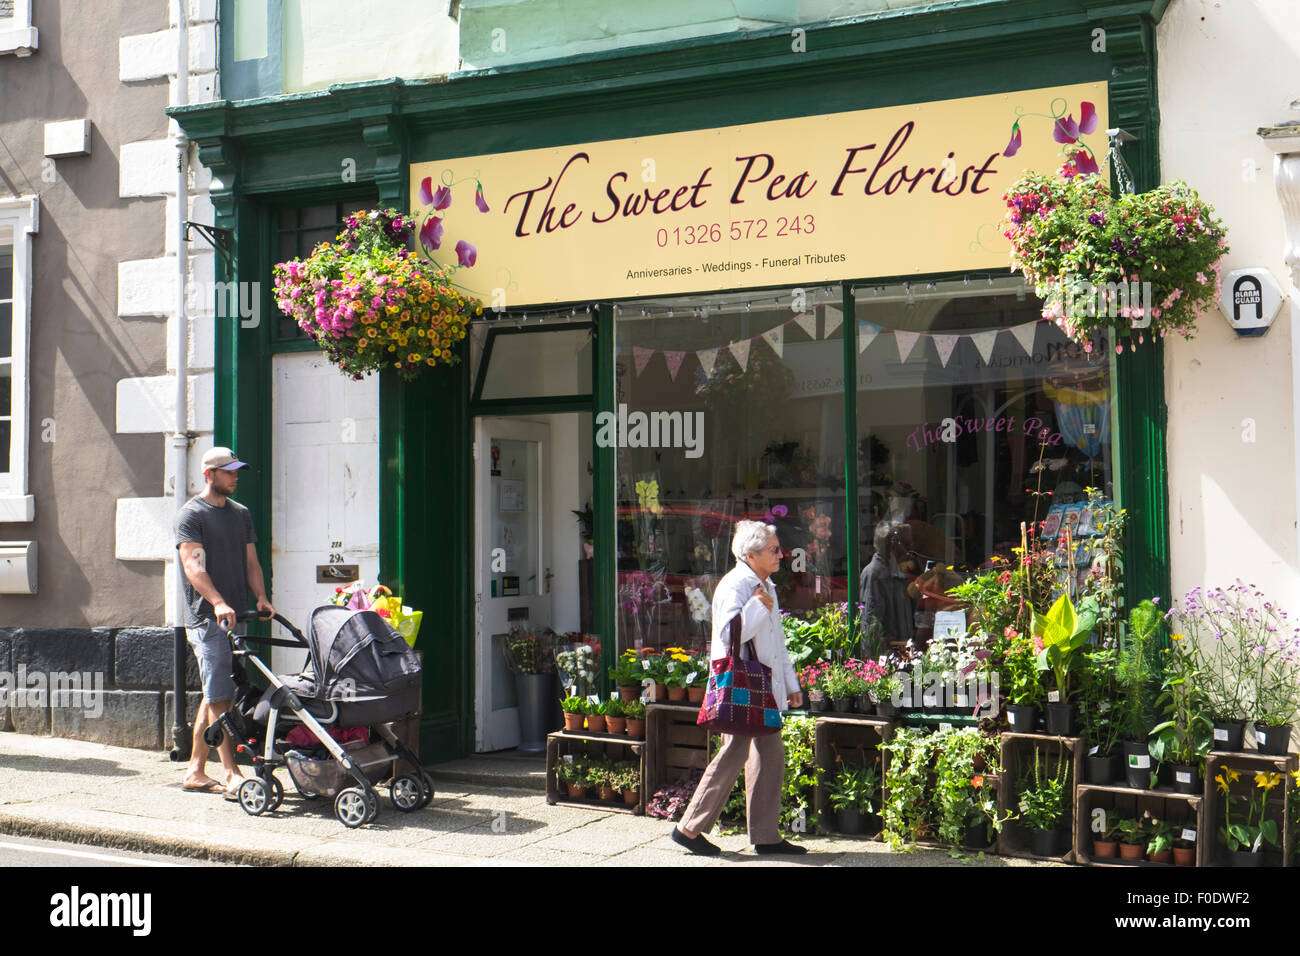 Helston a small town in the South West of England county of Cornwall  Sweat Pea Florist Meneage Street - Stock Image